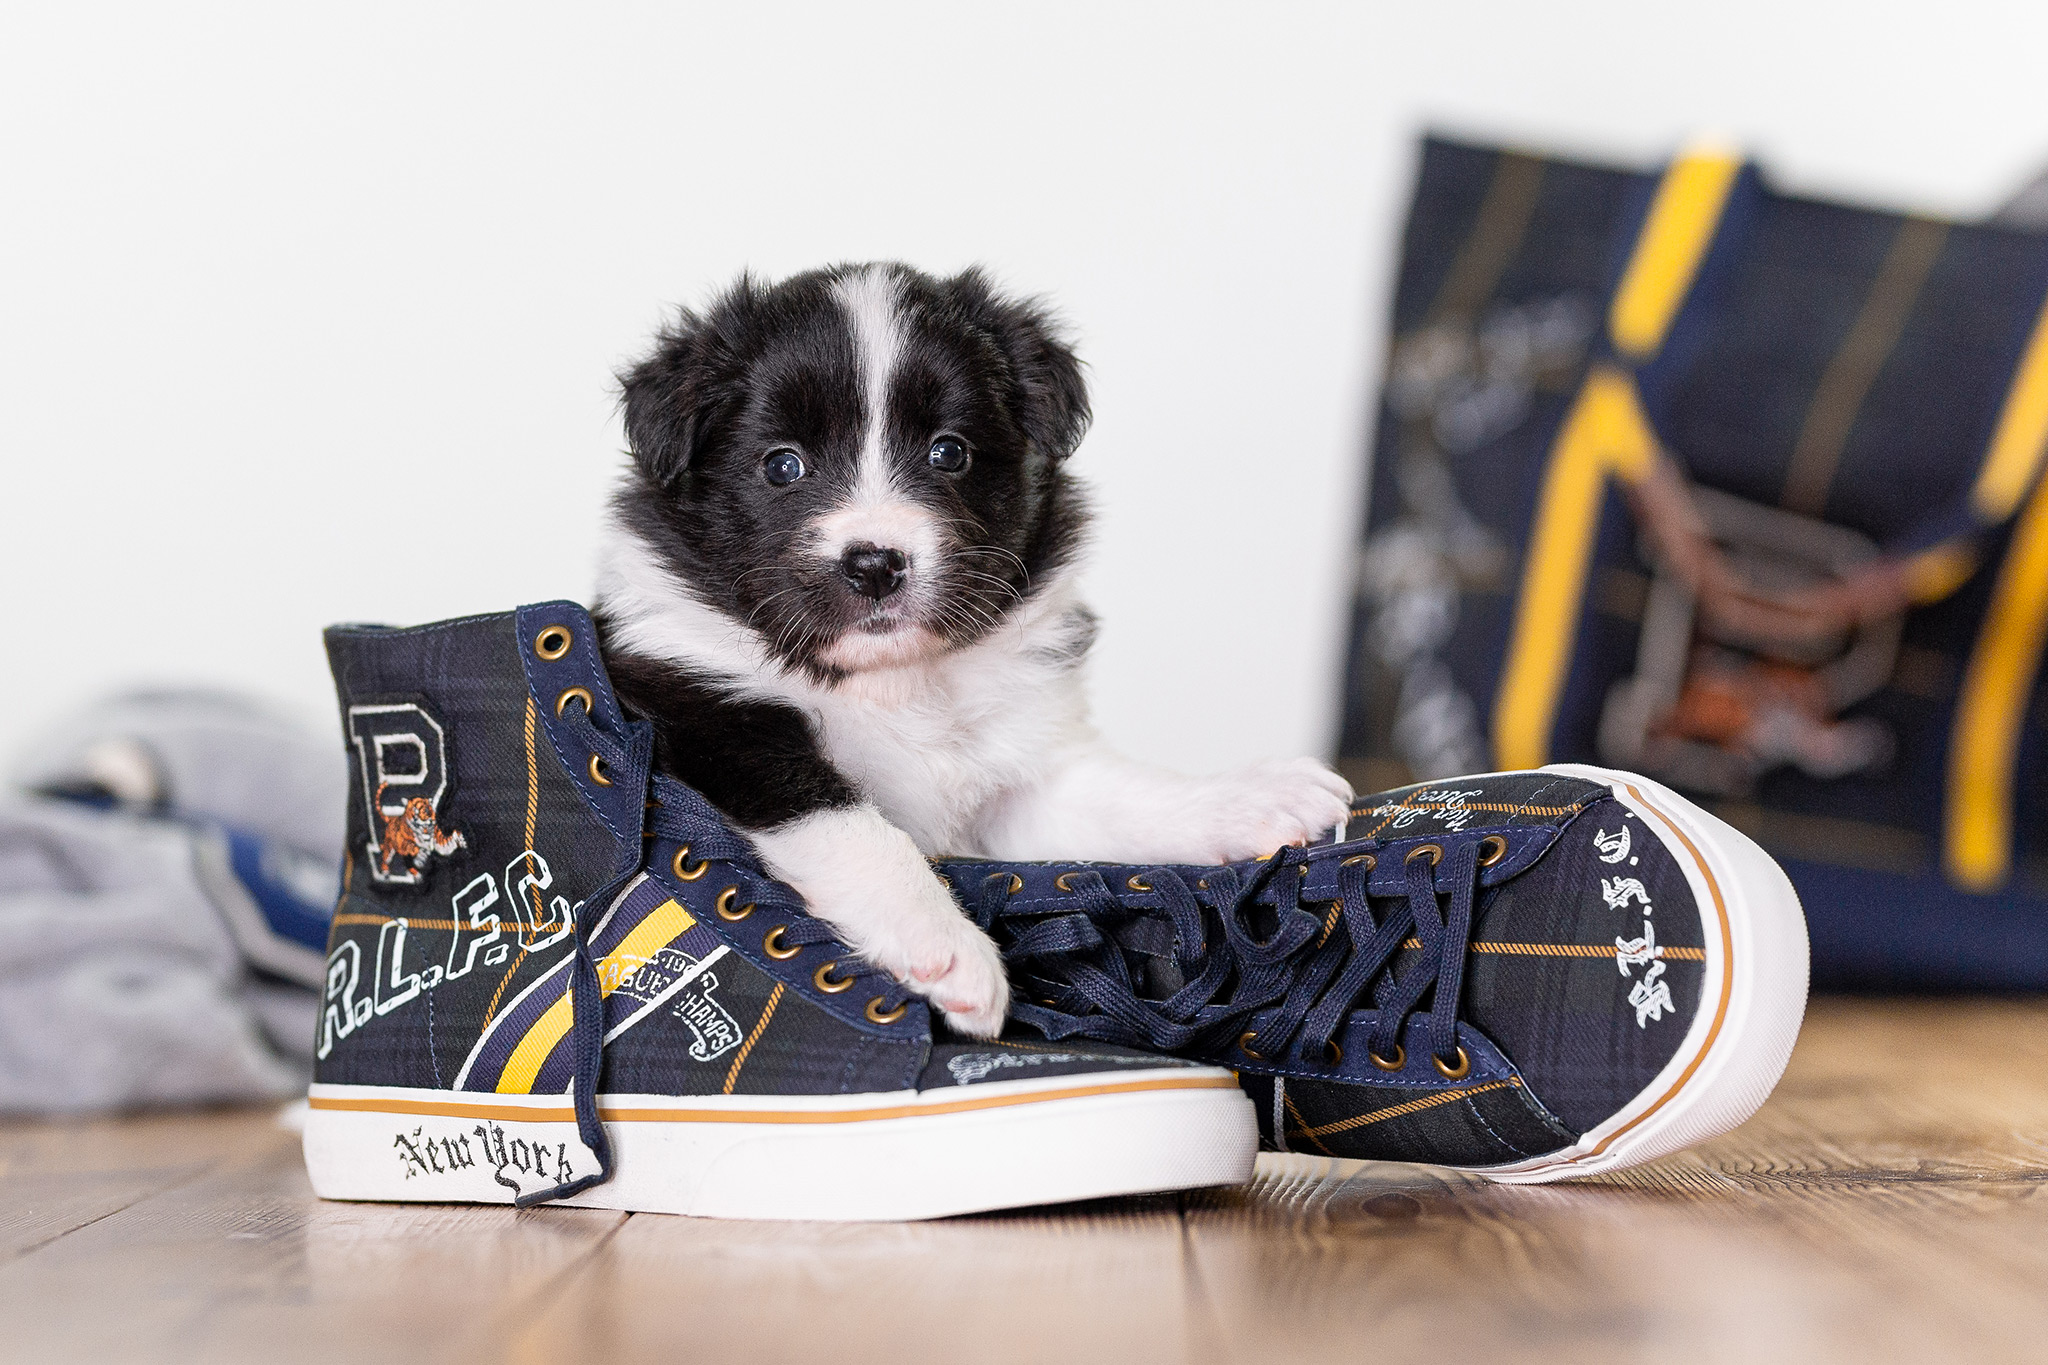 Border Collie Welpe mit Ralph Lauren Sneakers